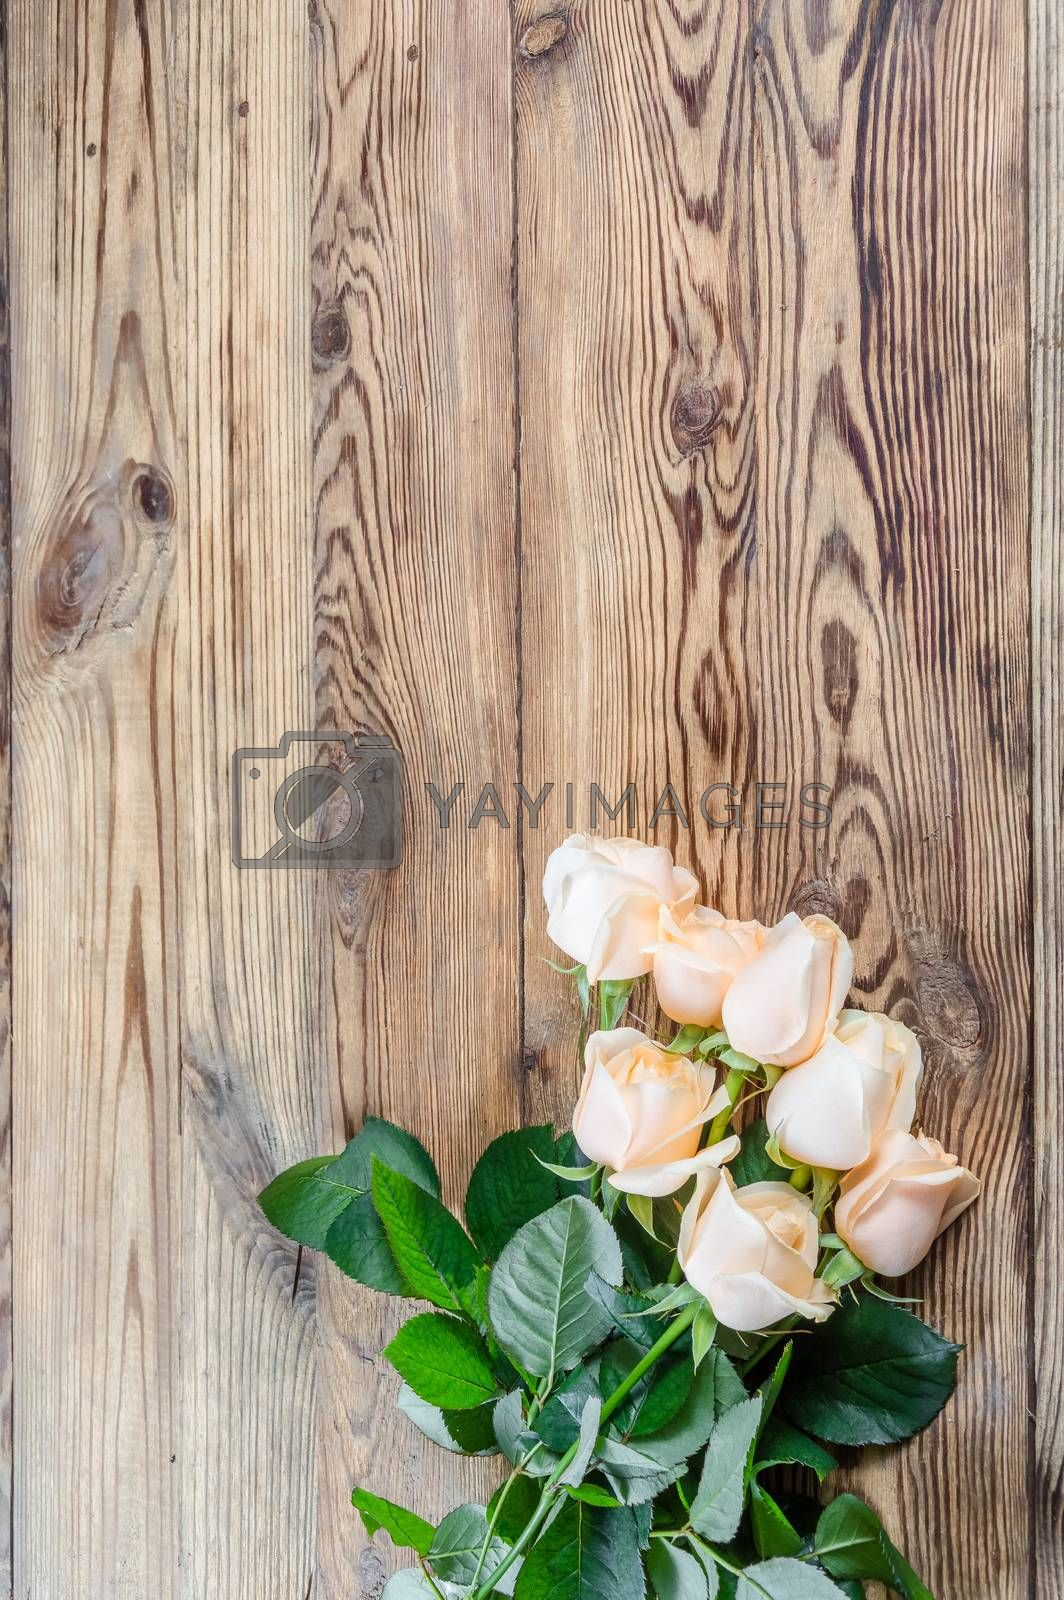 Roses on rustic wooden table